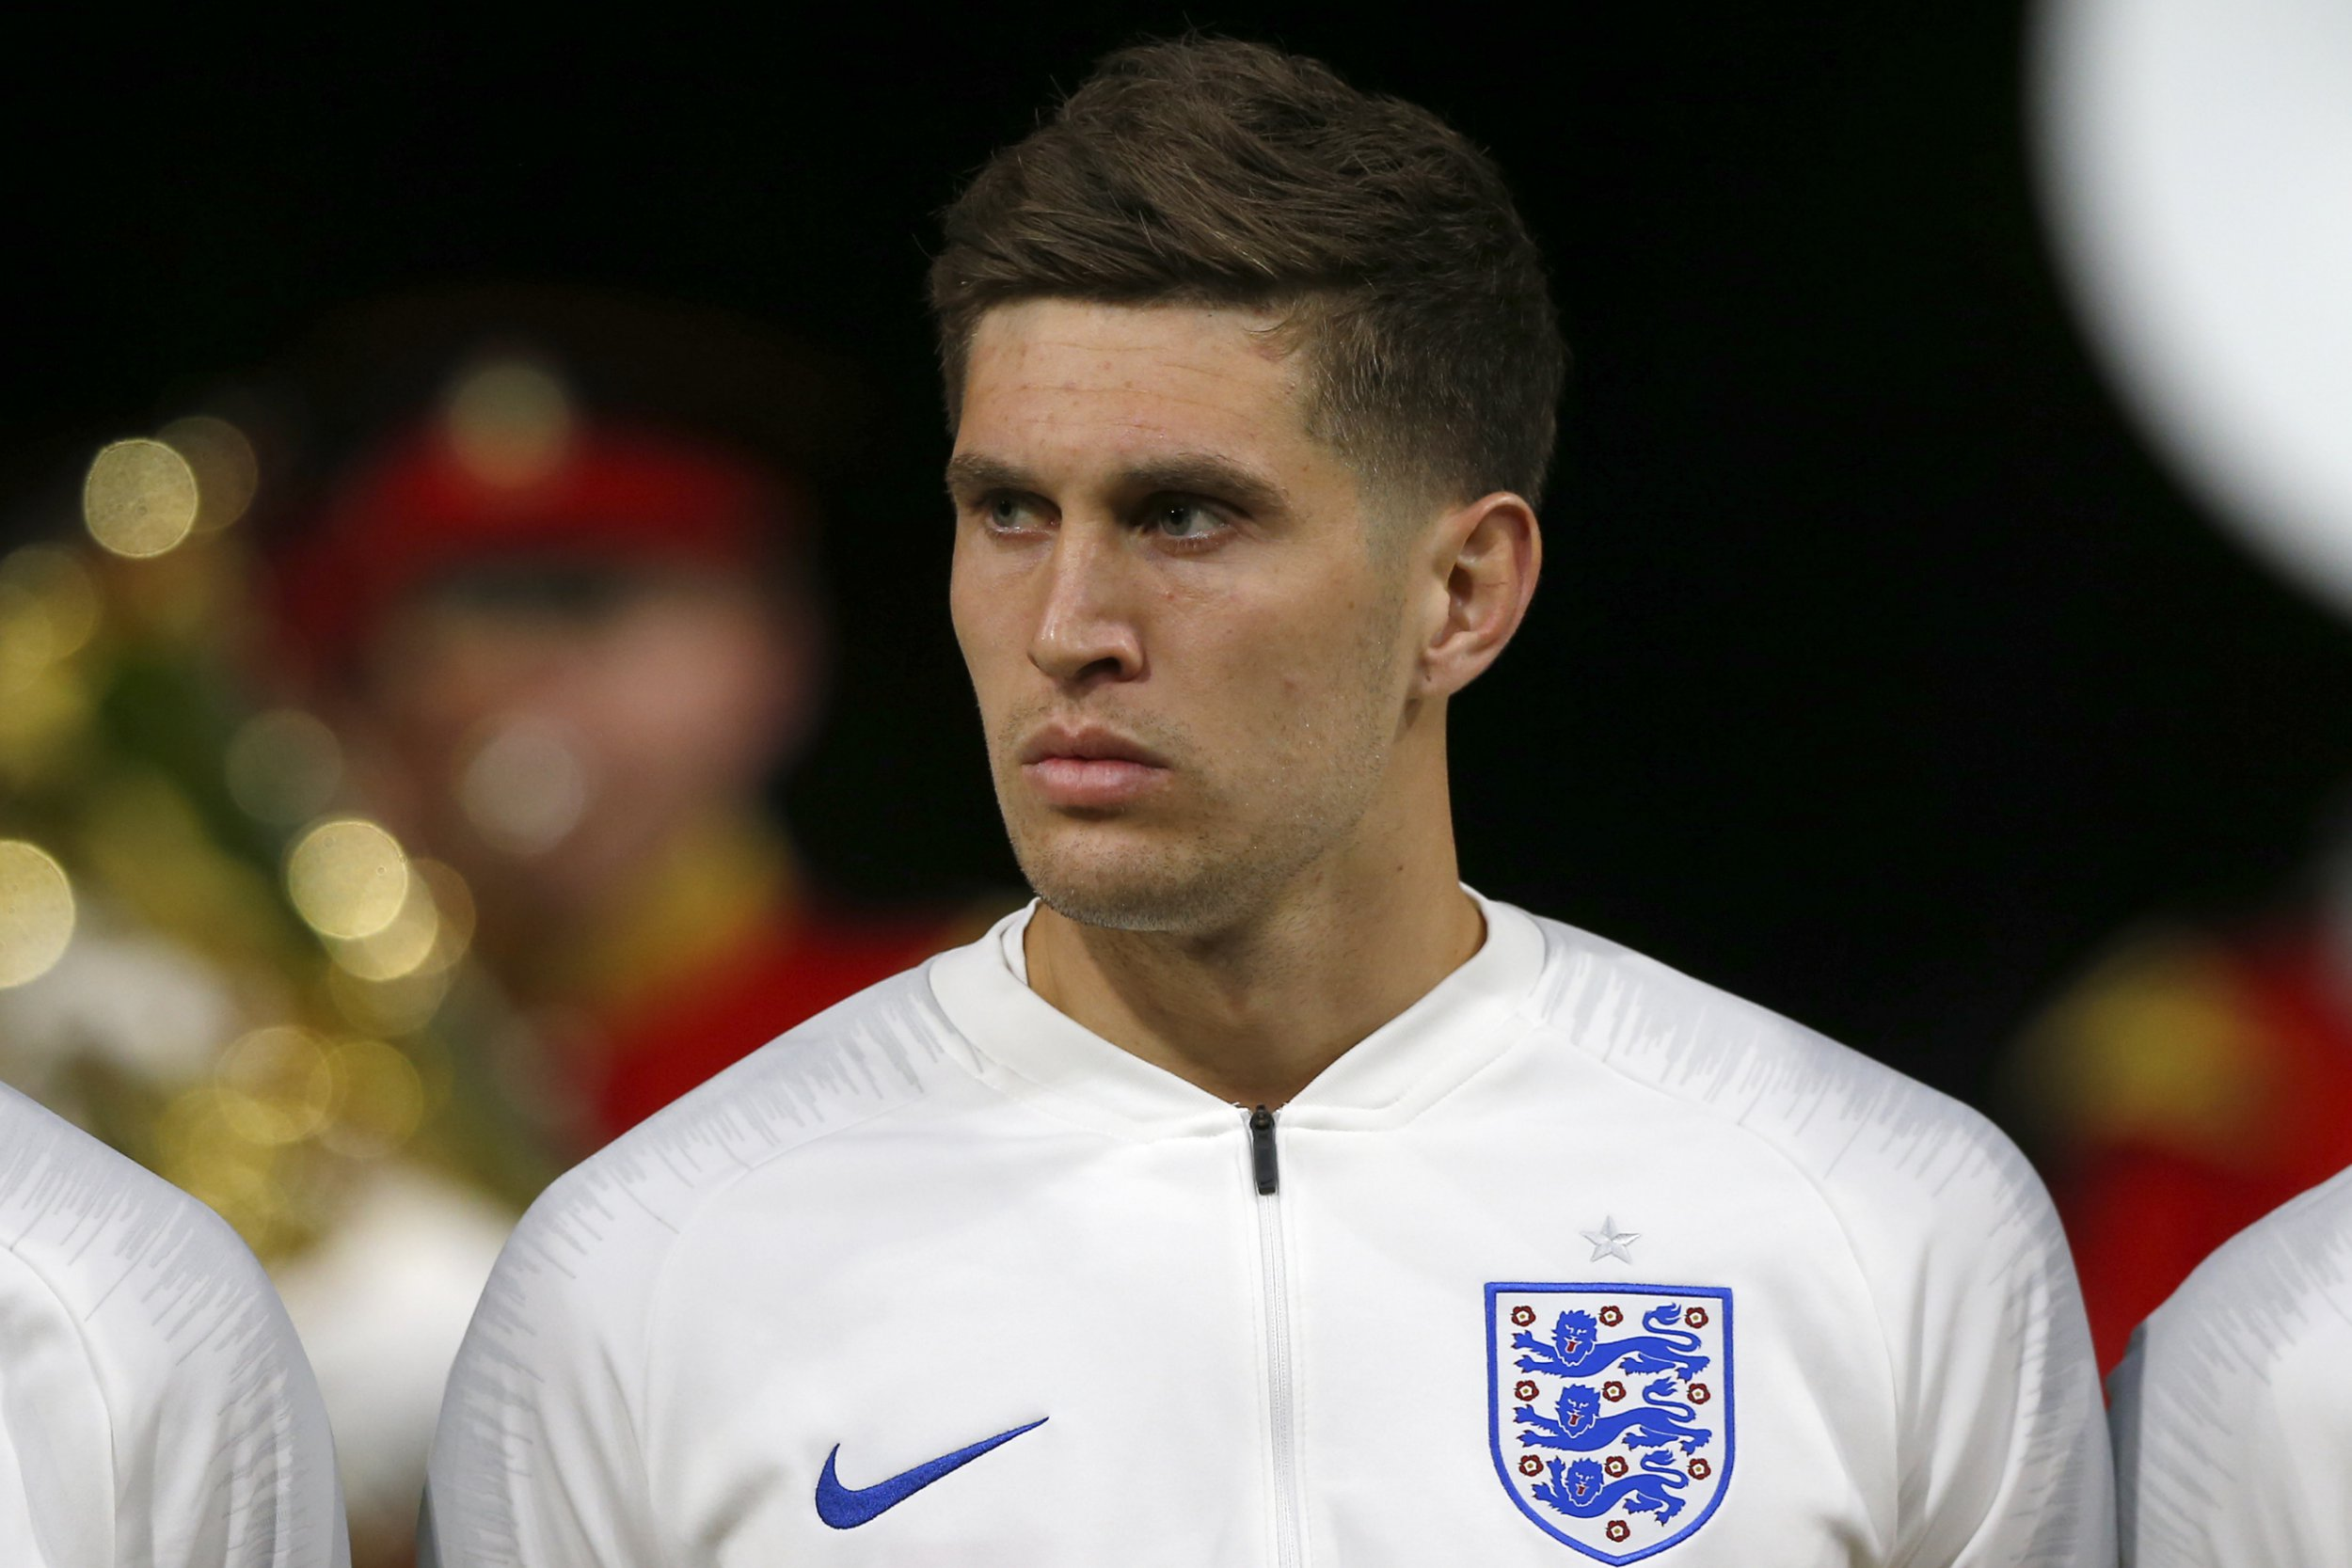 England's John Stones lines up prior to the international friendly soccer match between the Netherlands and England at the Amsterdam ArenA in Amsterdam, Netherlands, Friday, March 23, 2018. (AP Photo/Peter Dejong)